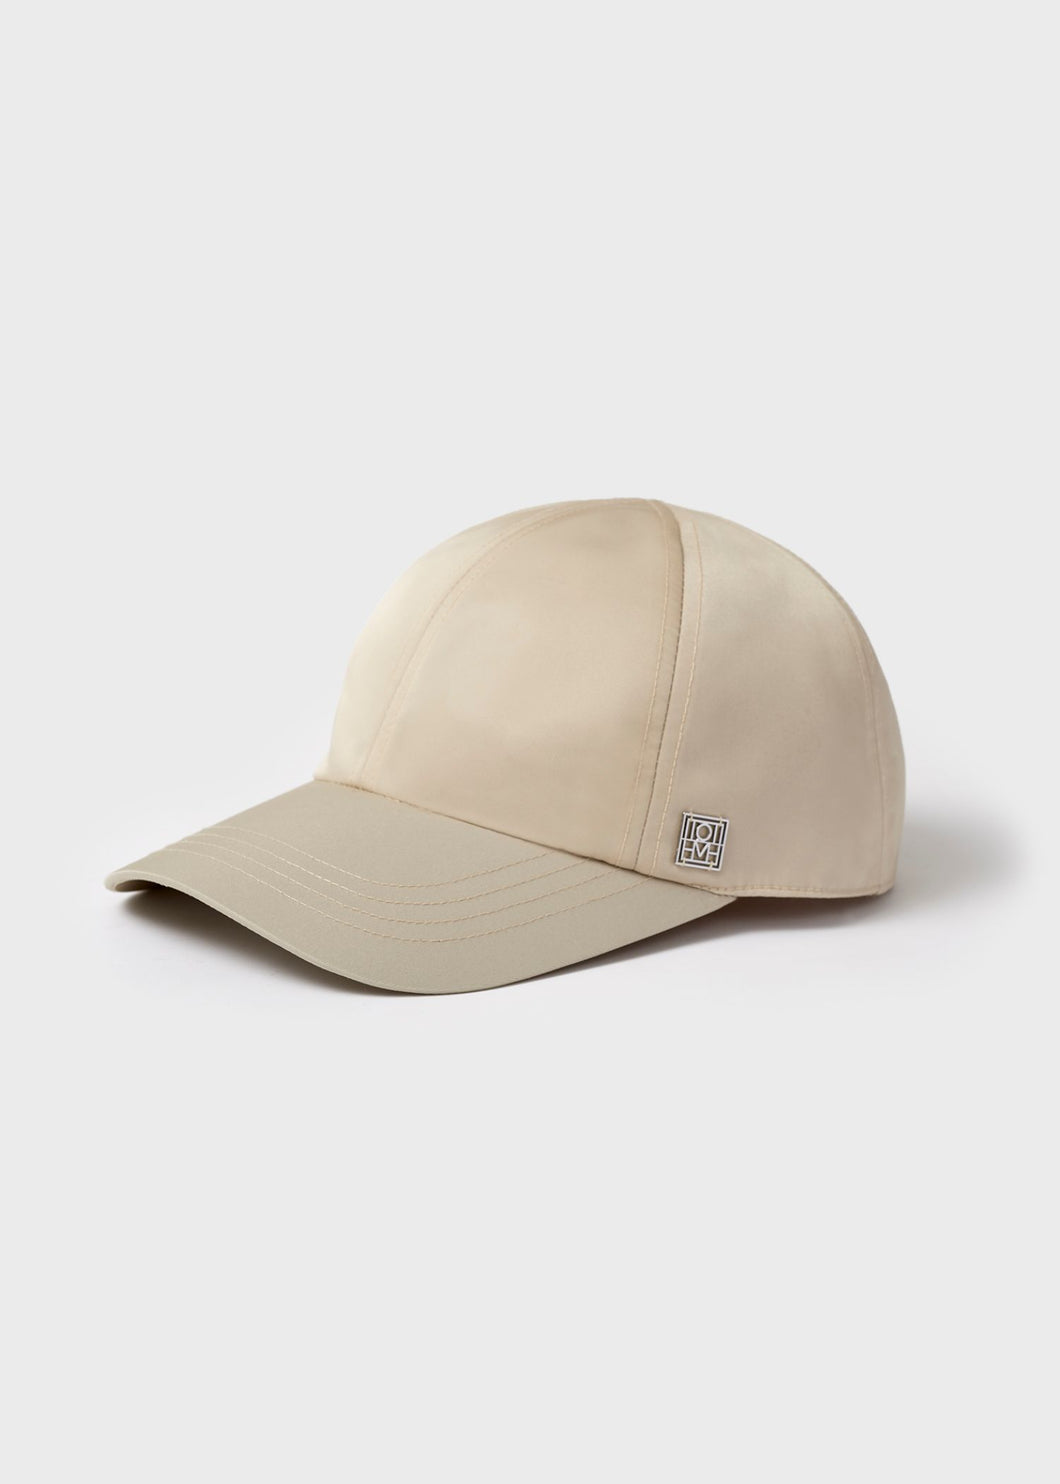 Light Concrete Baseball Cap